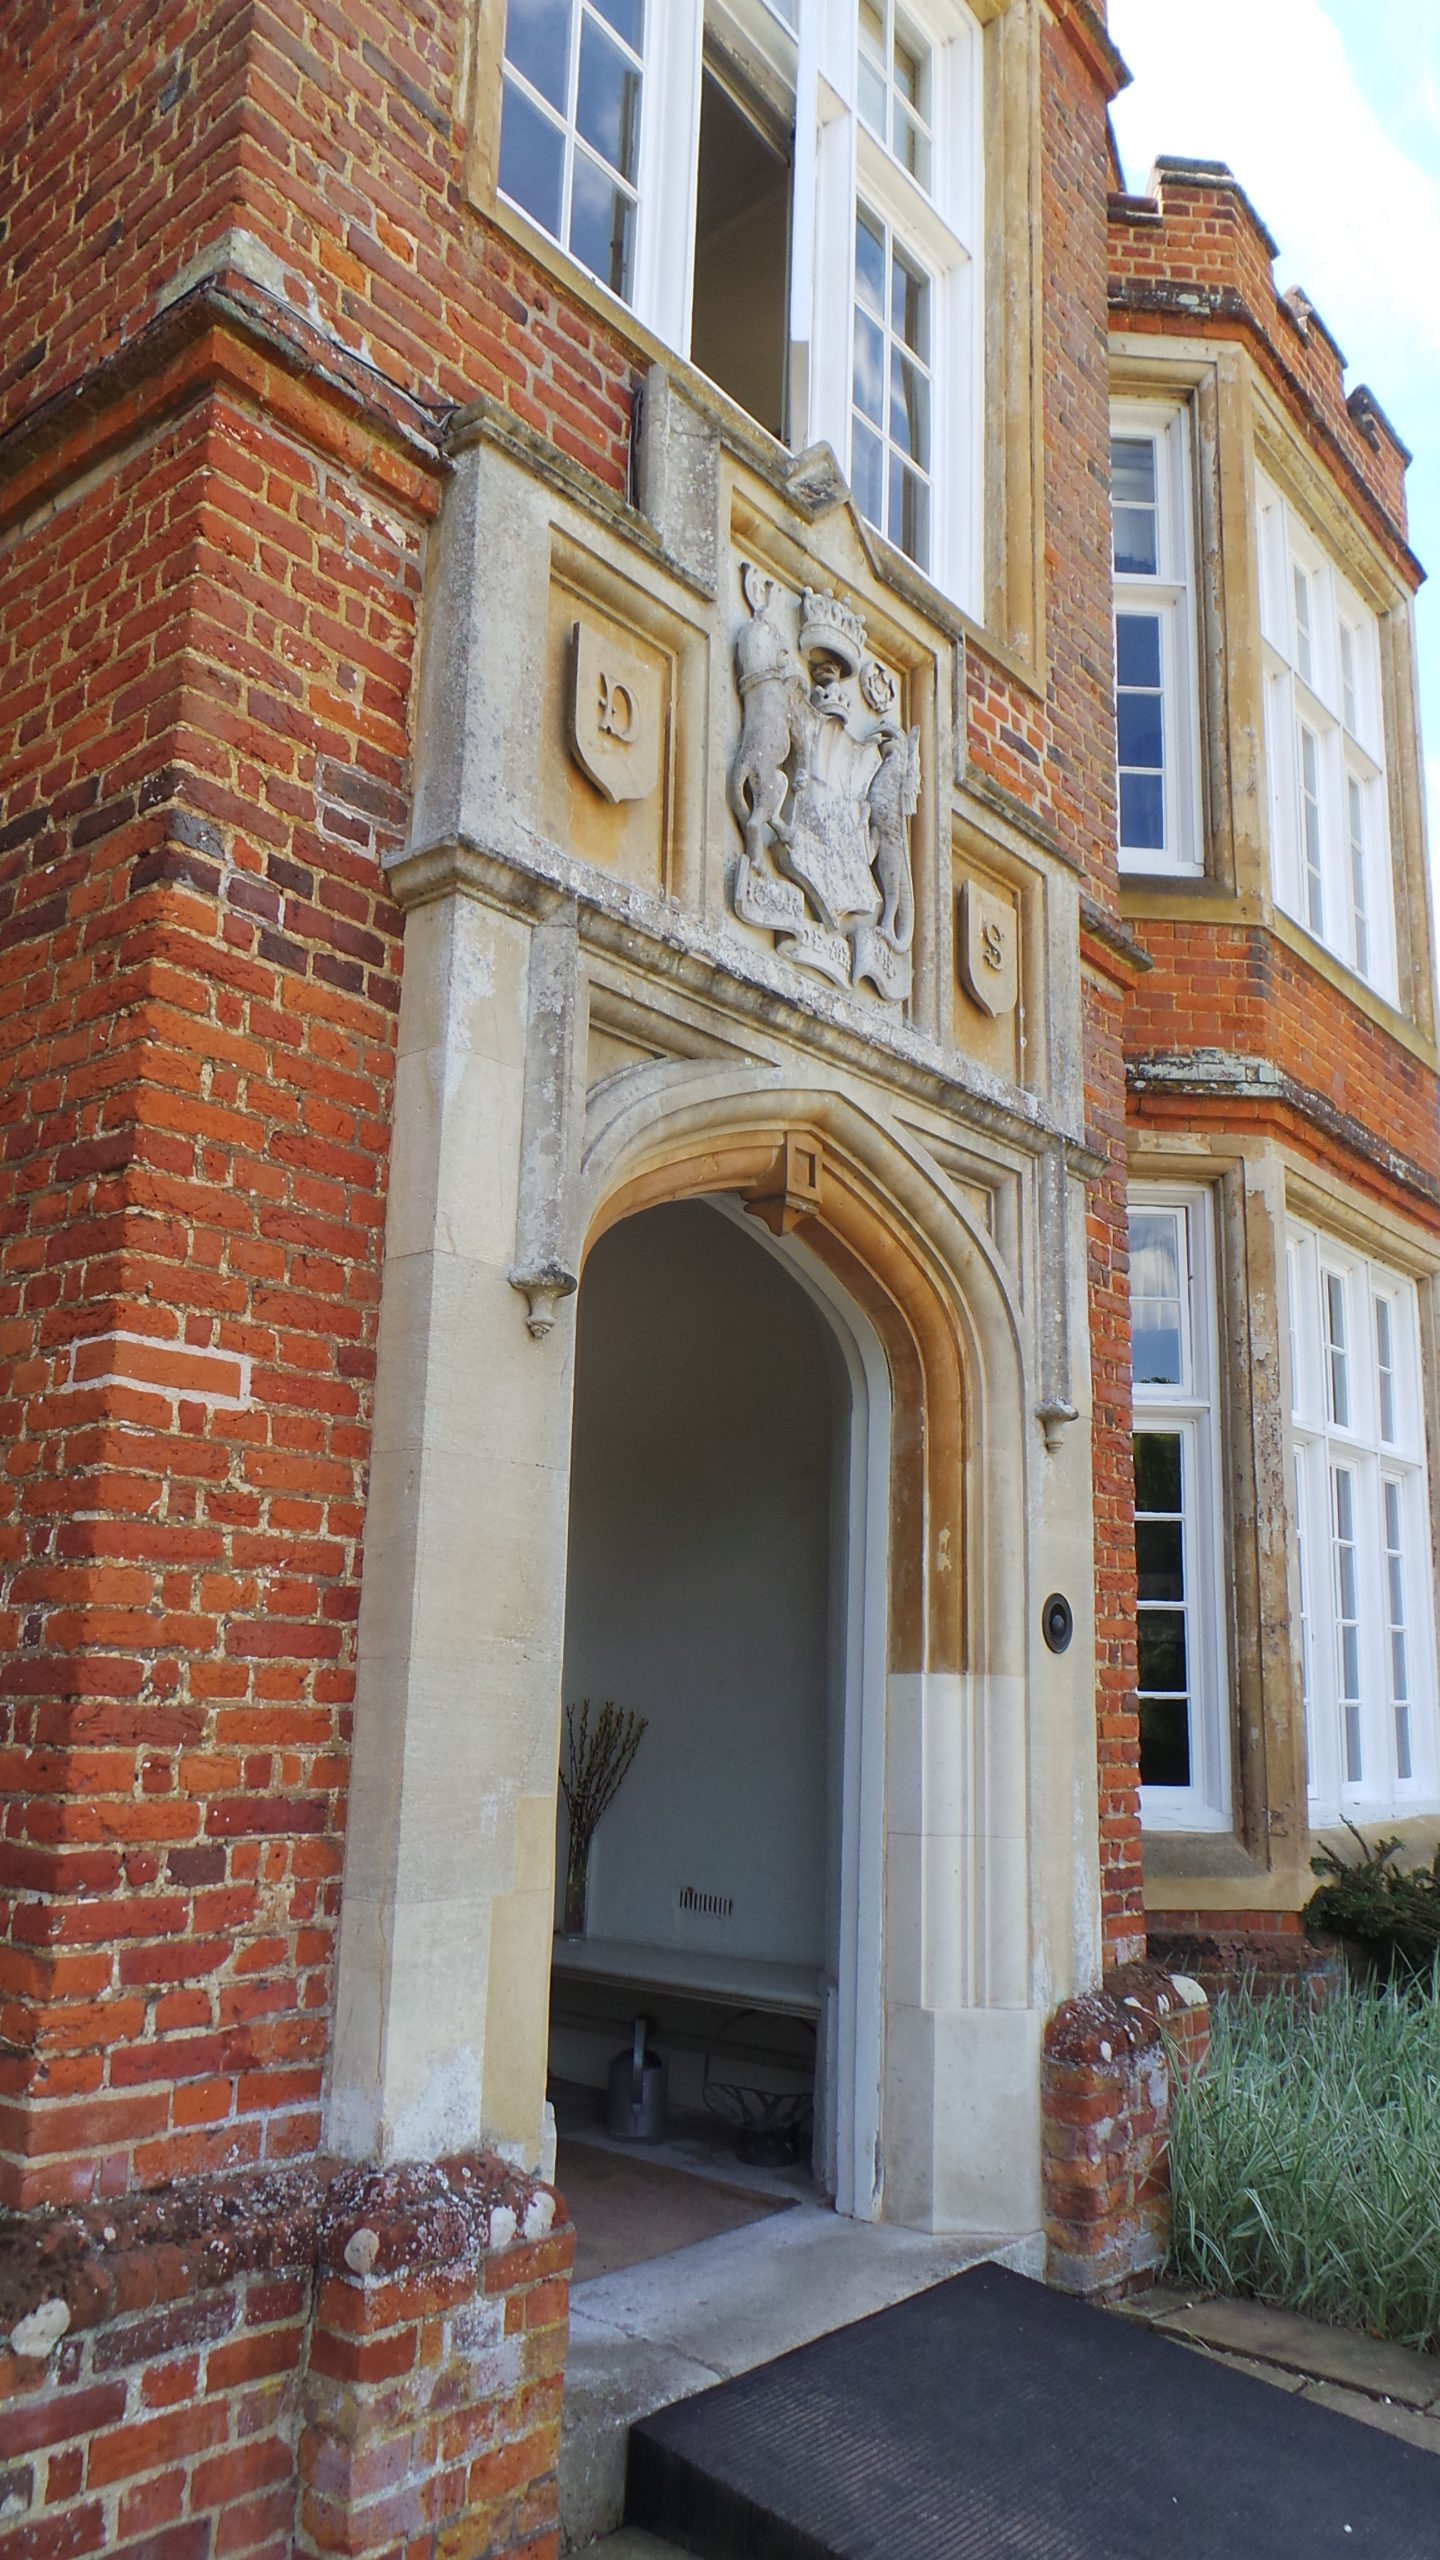 The front door at Bourn Hall